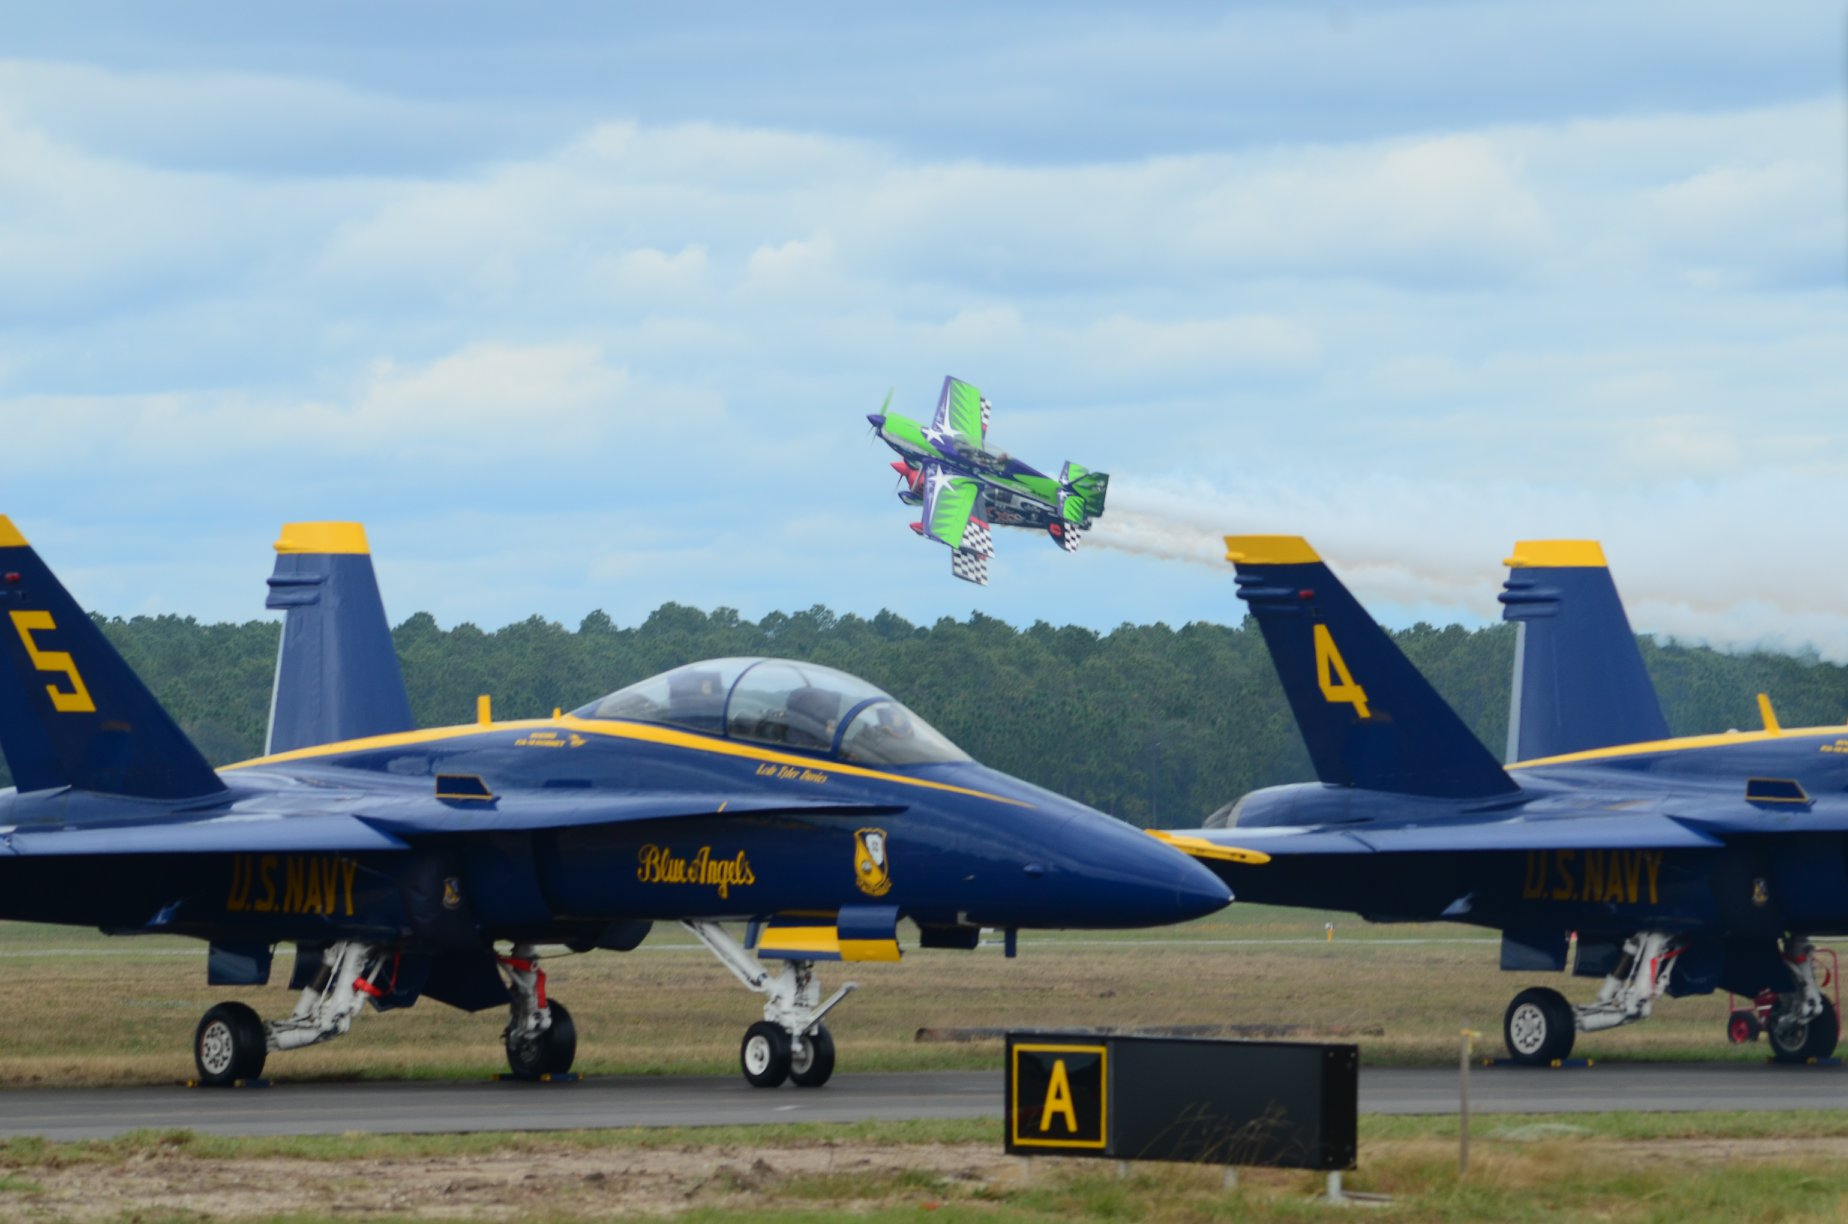 2016 Blue Angels Homecoming event at NAS Pensacola.